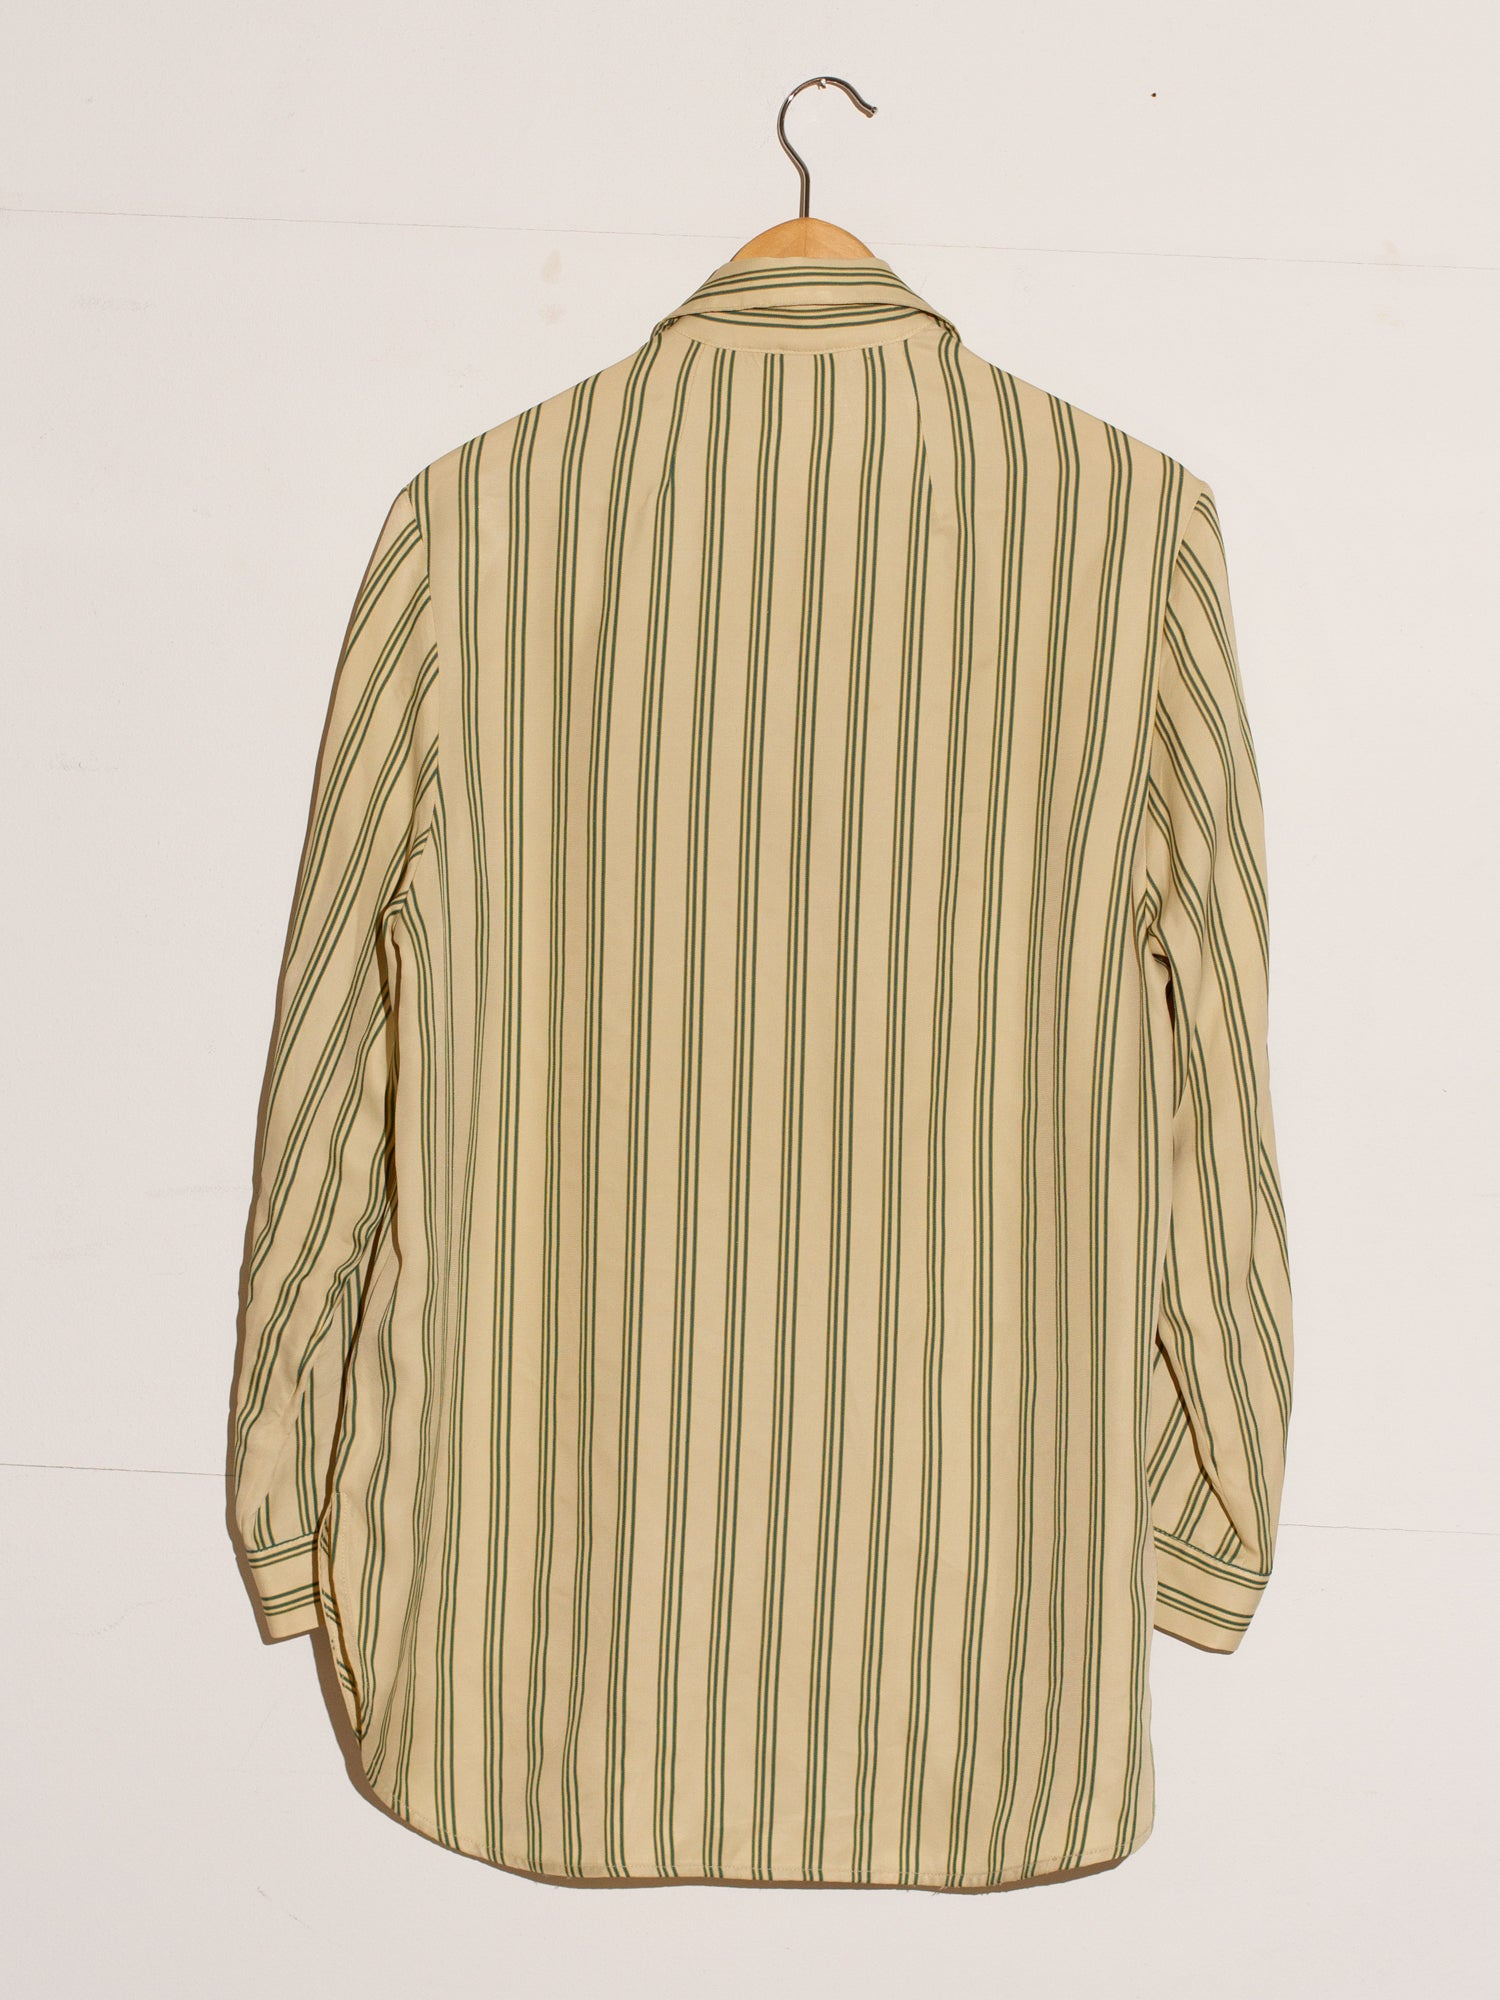 CLASSY VINTAGE STRIPED BLOUSE